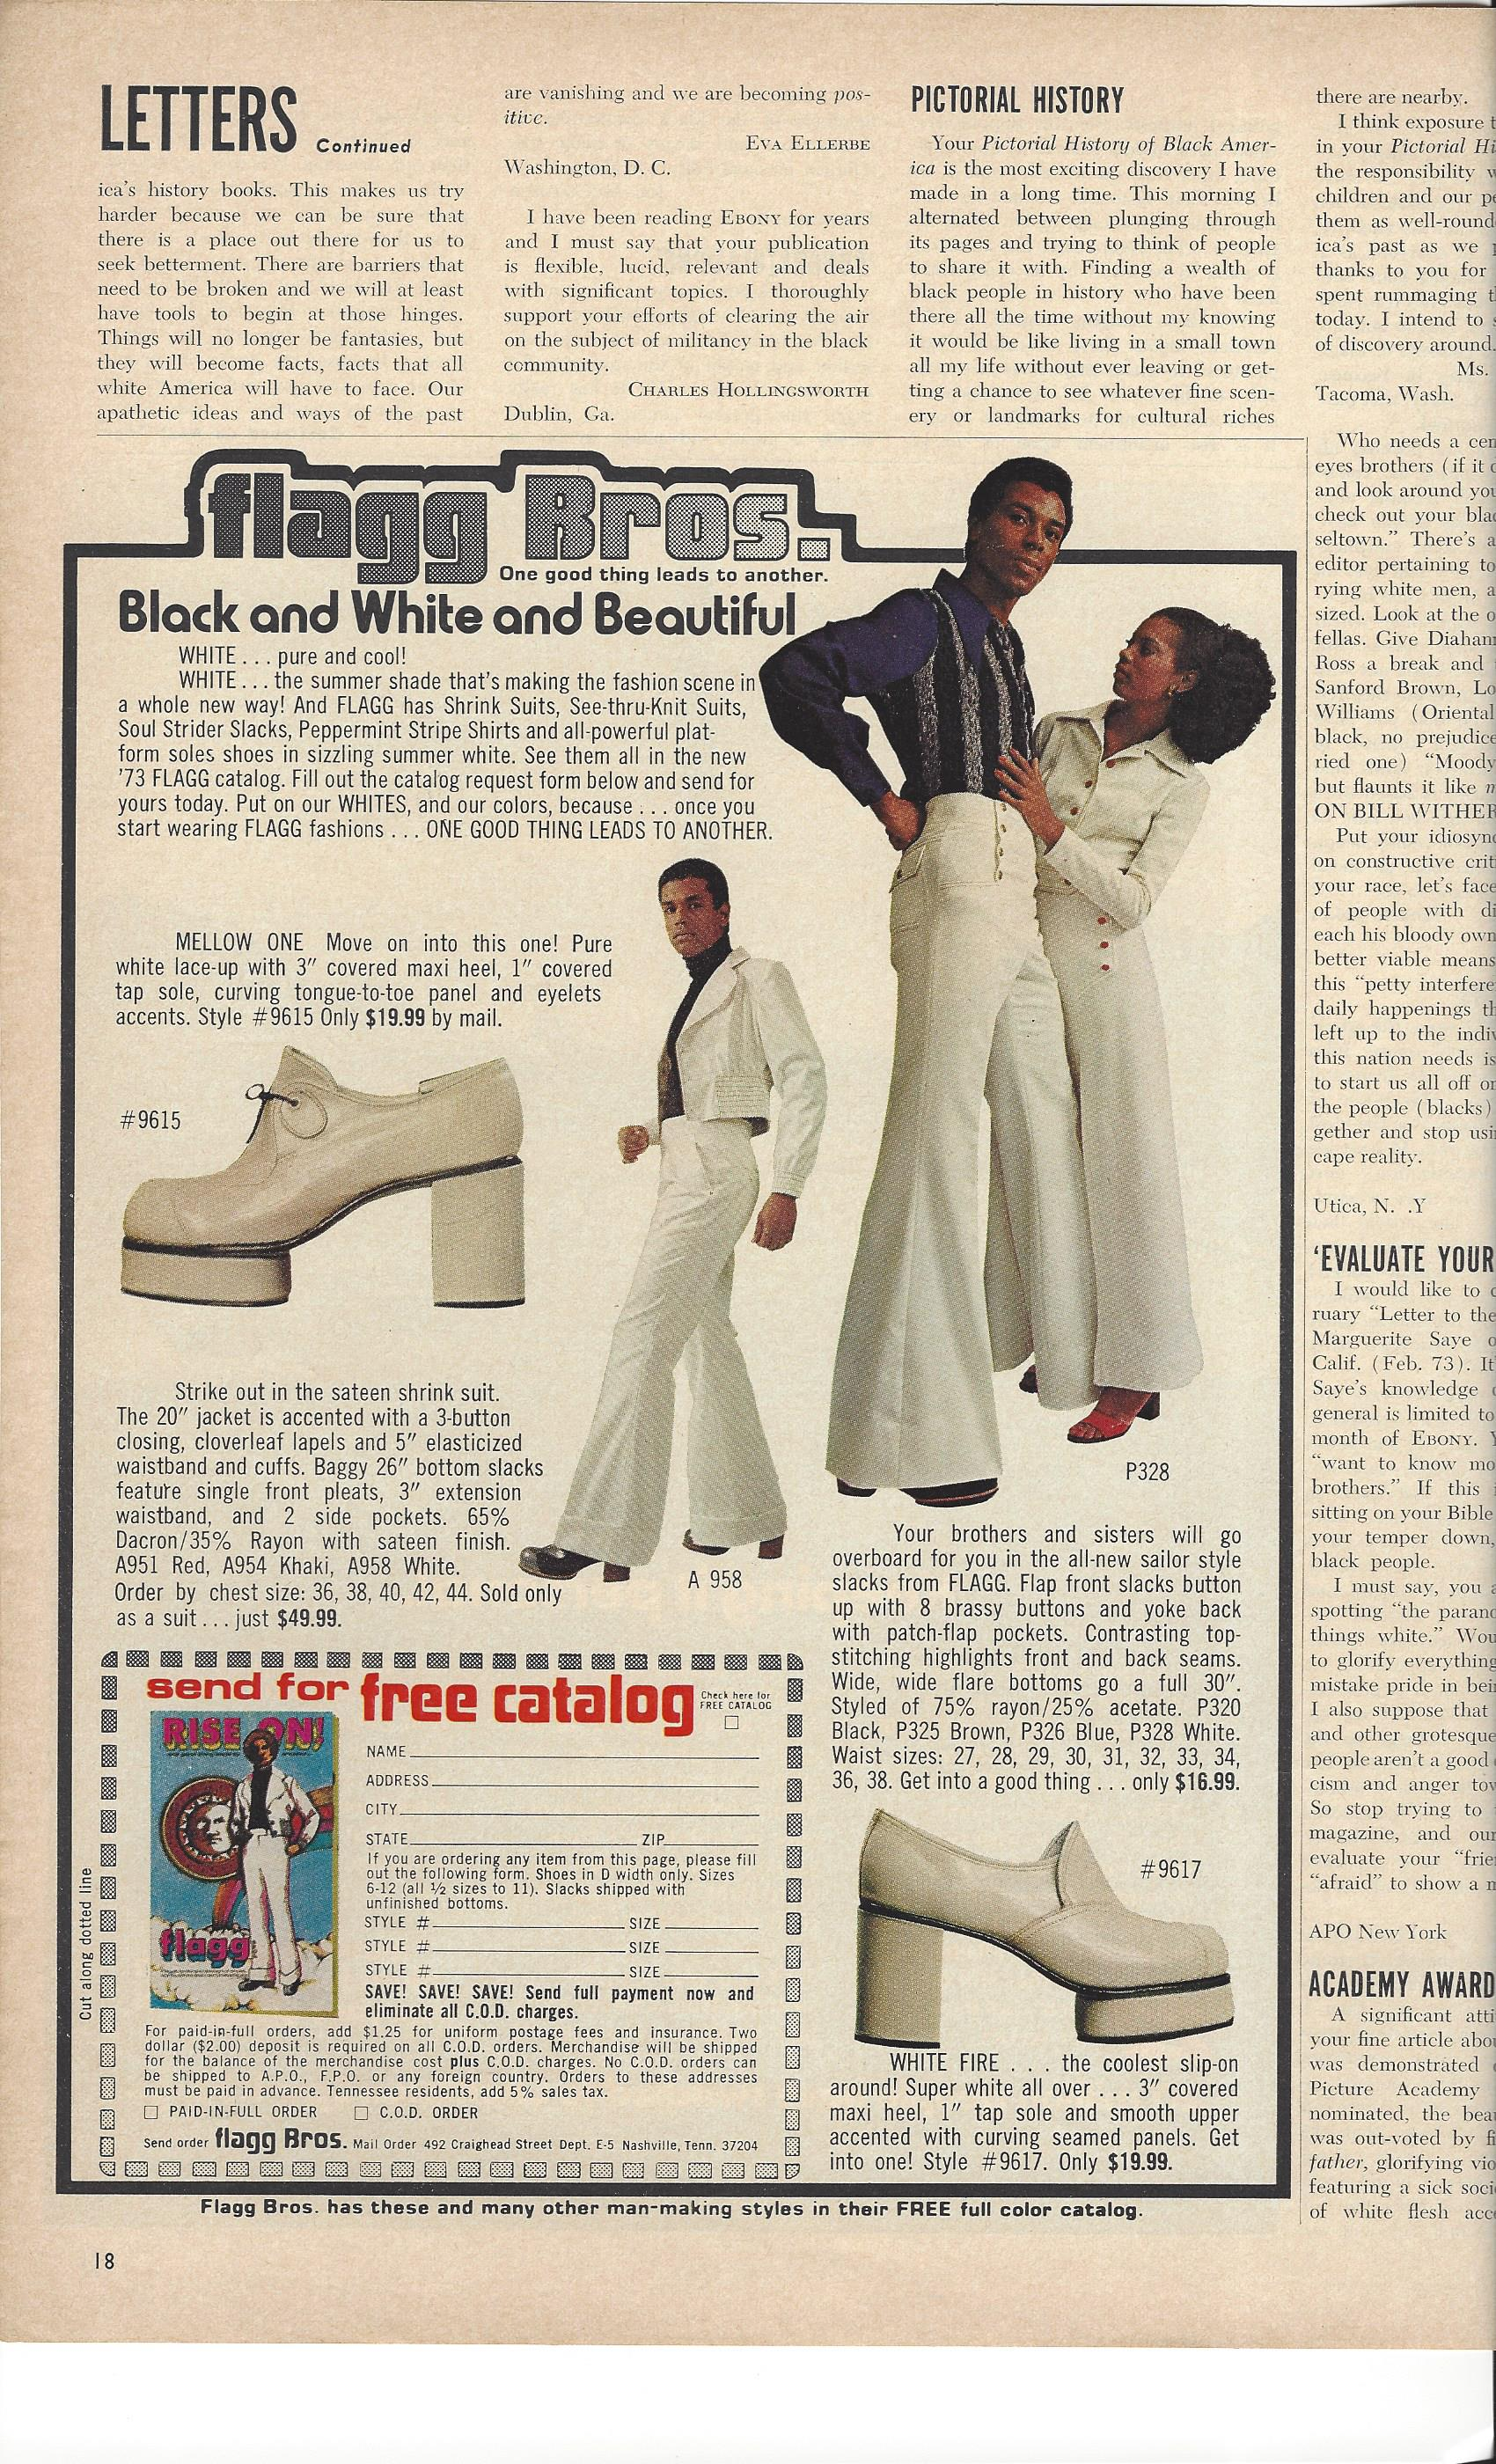 Free shipping in US for all vintage ads